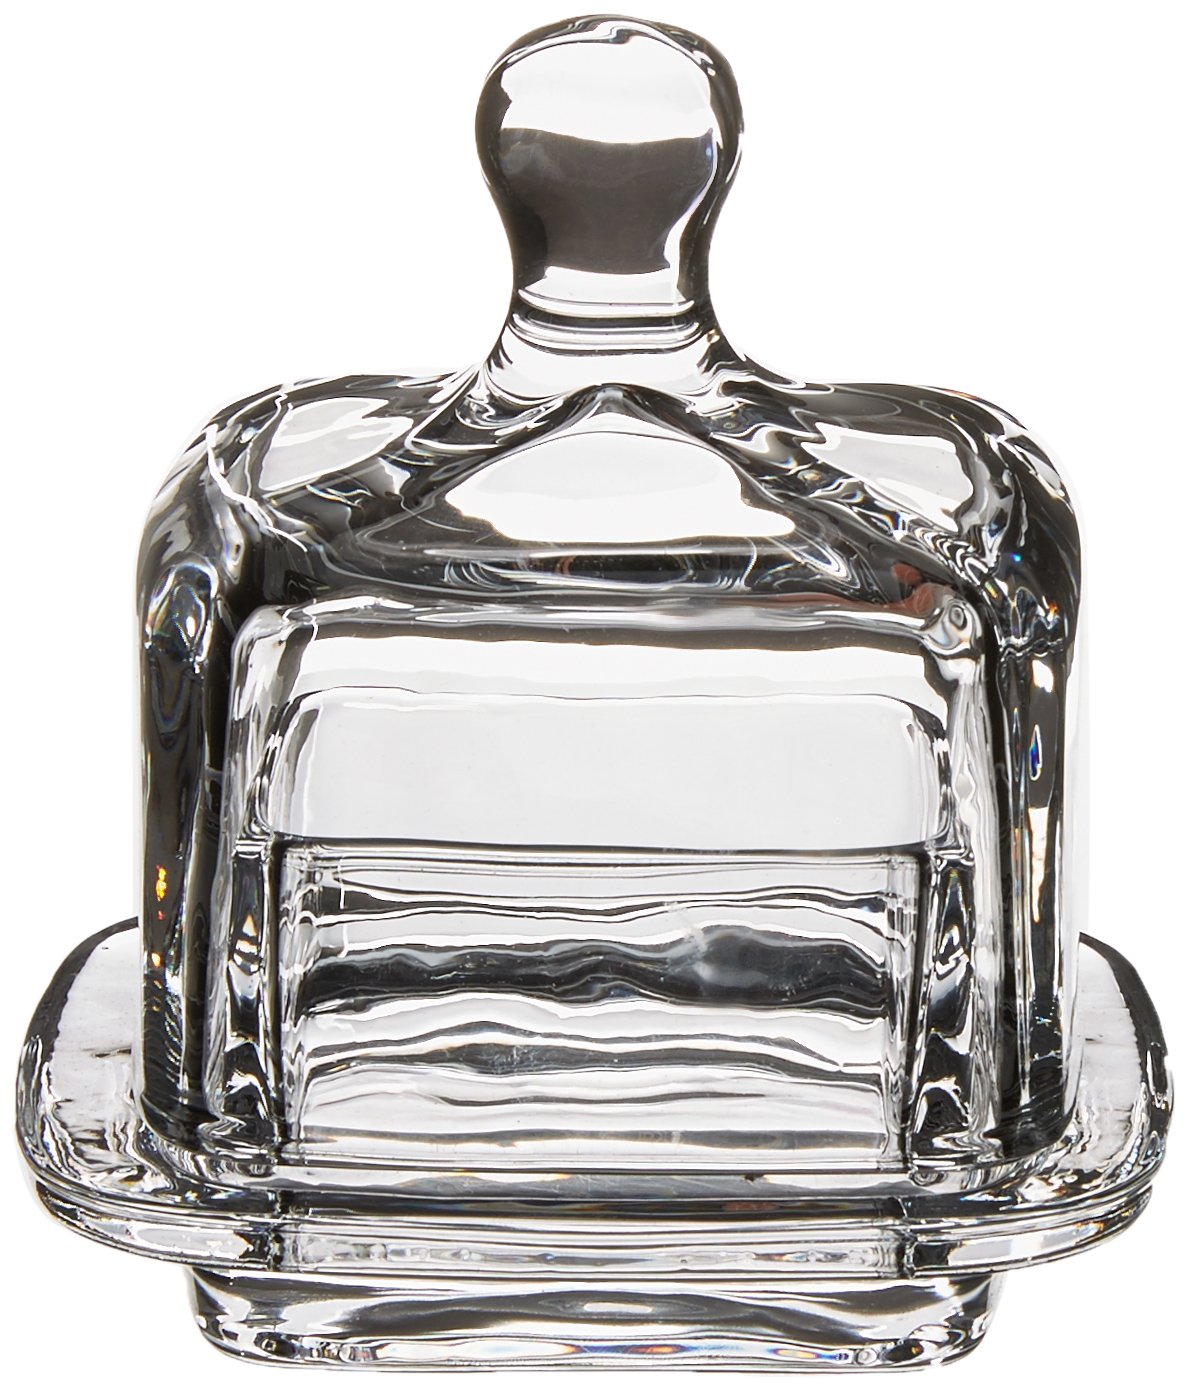 Abbott Collection Home 27-Churn Small Square Covered Dish, Clear HUYCHI